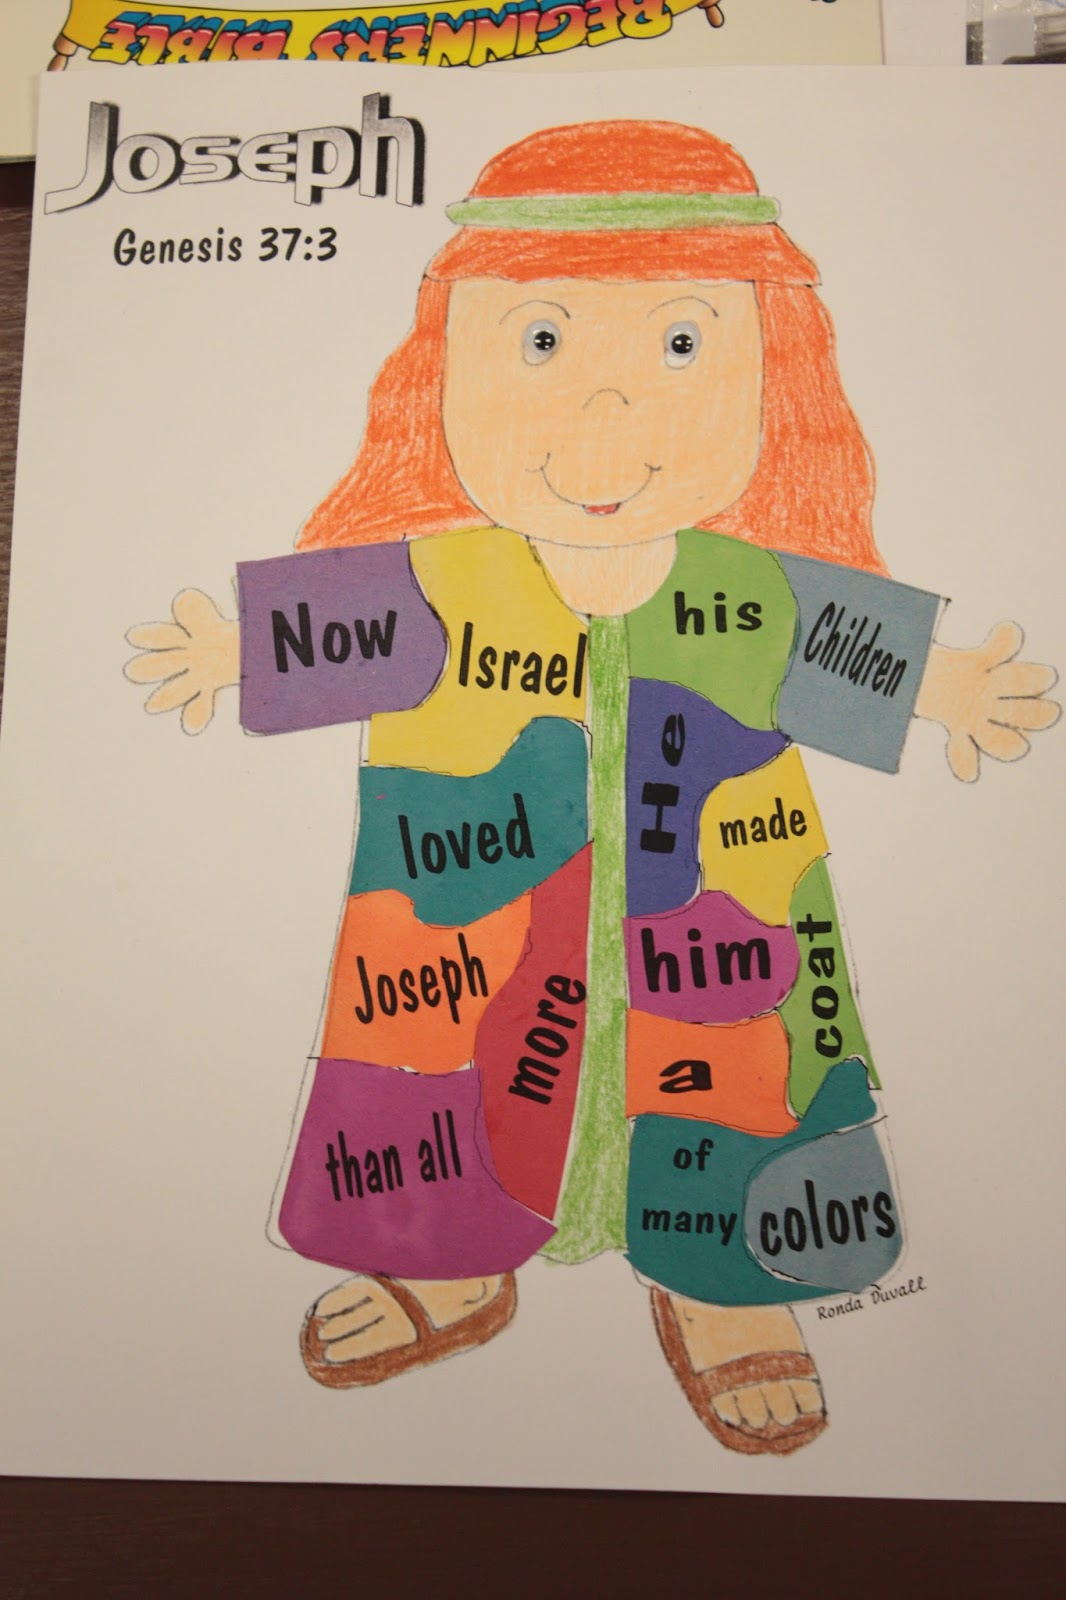 Hands On Bible Teacher: Joseph and His Colorful Coat